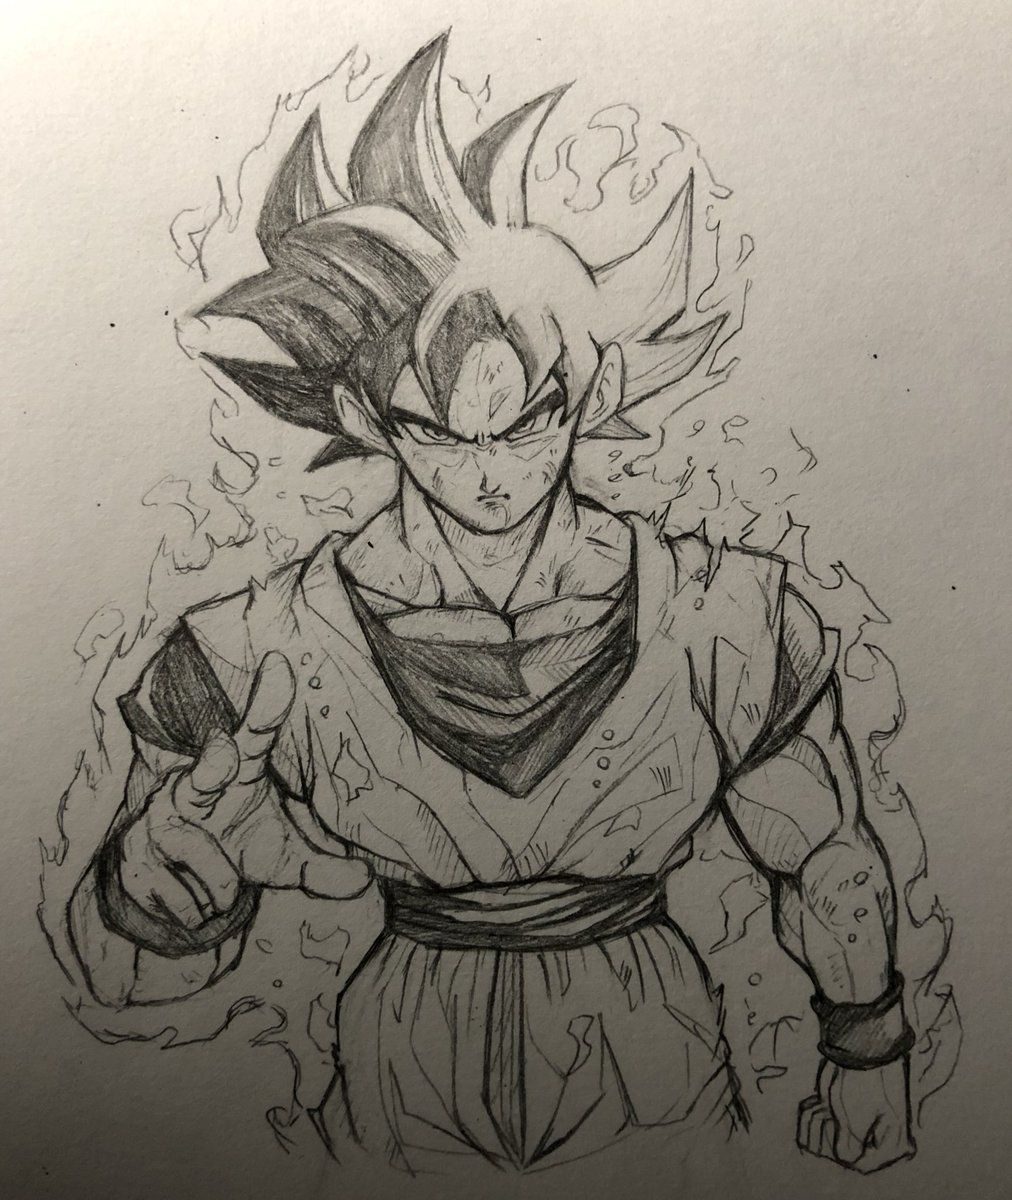 ぶれ At Fantastickyouth Twitter Dessin Dbz Dessin Et